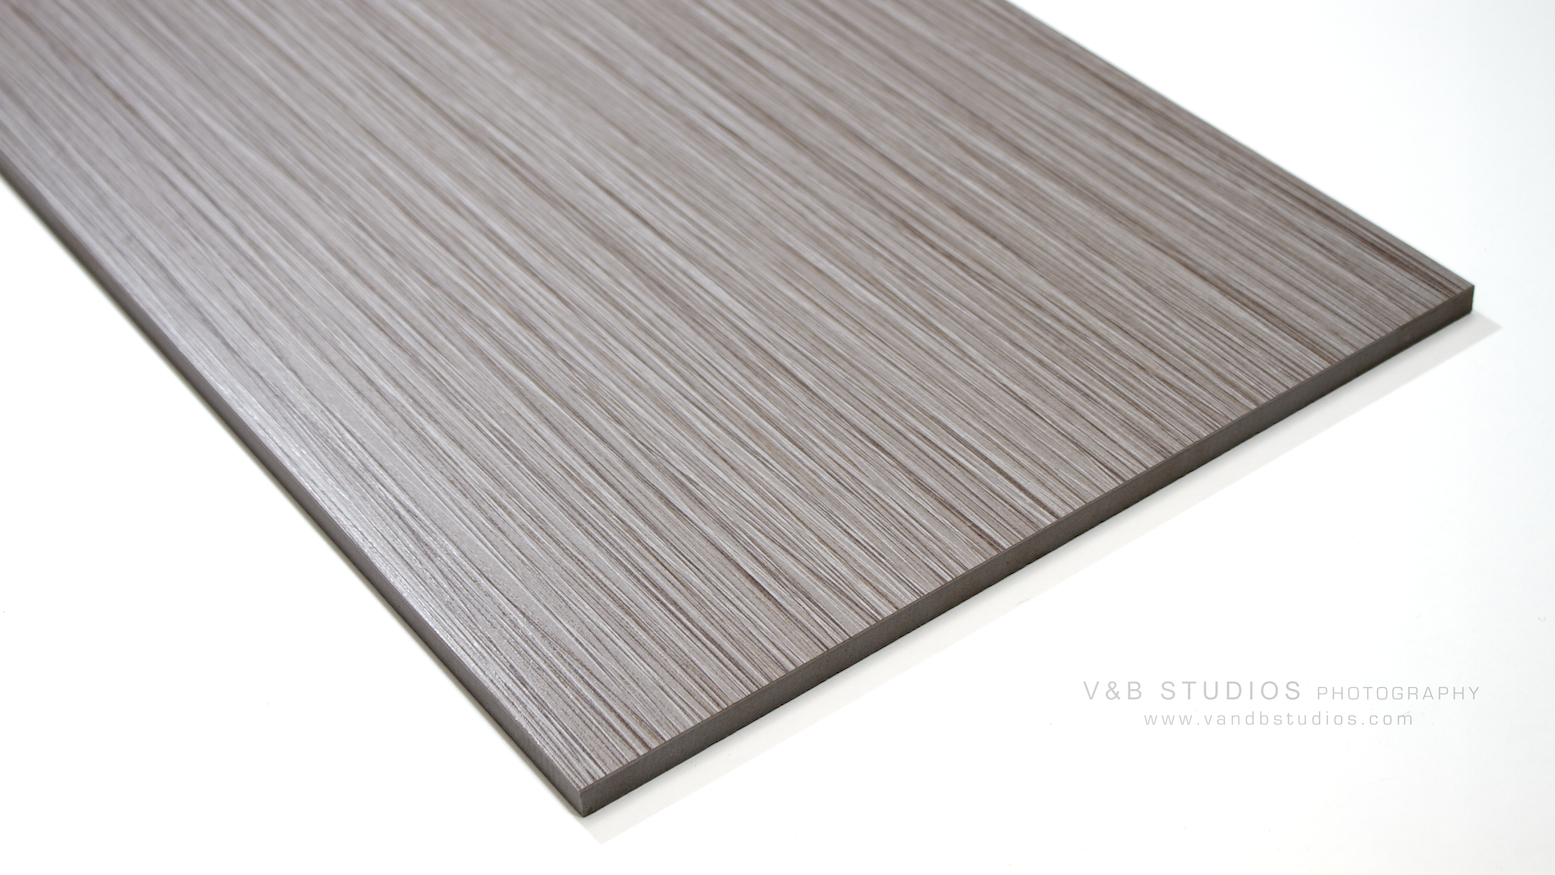 Bamboo pattern porcelain tiles 5 colors tiledaily p0012gy bamboo pattern porcelain tile dailygadgetfo Image collections